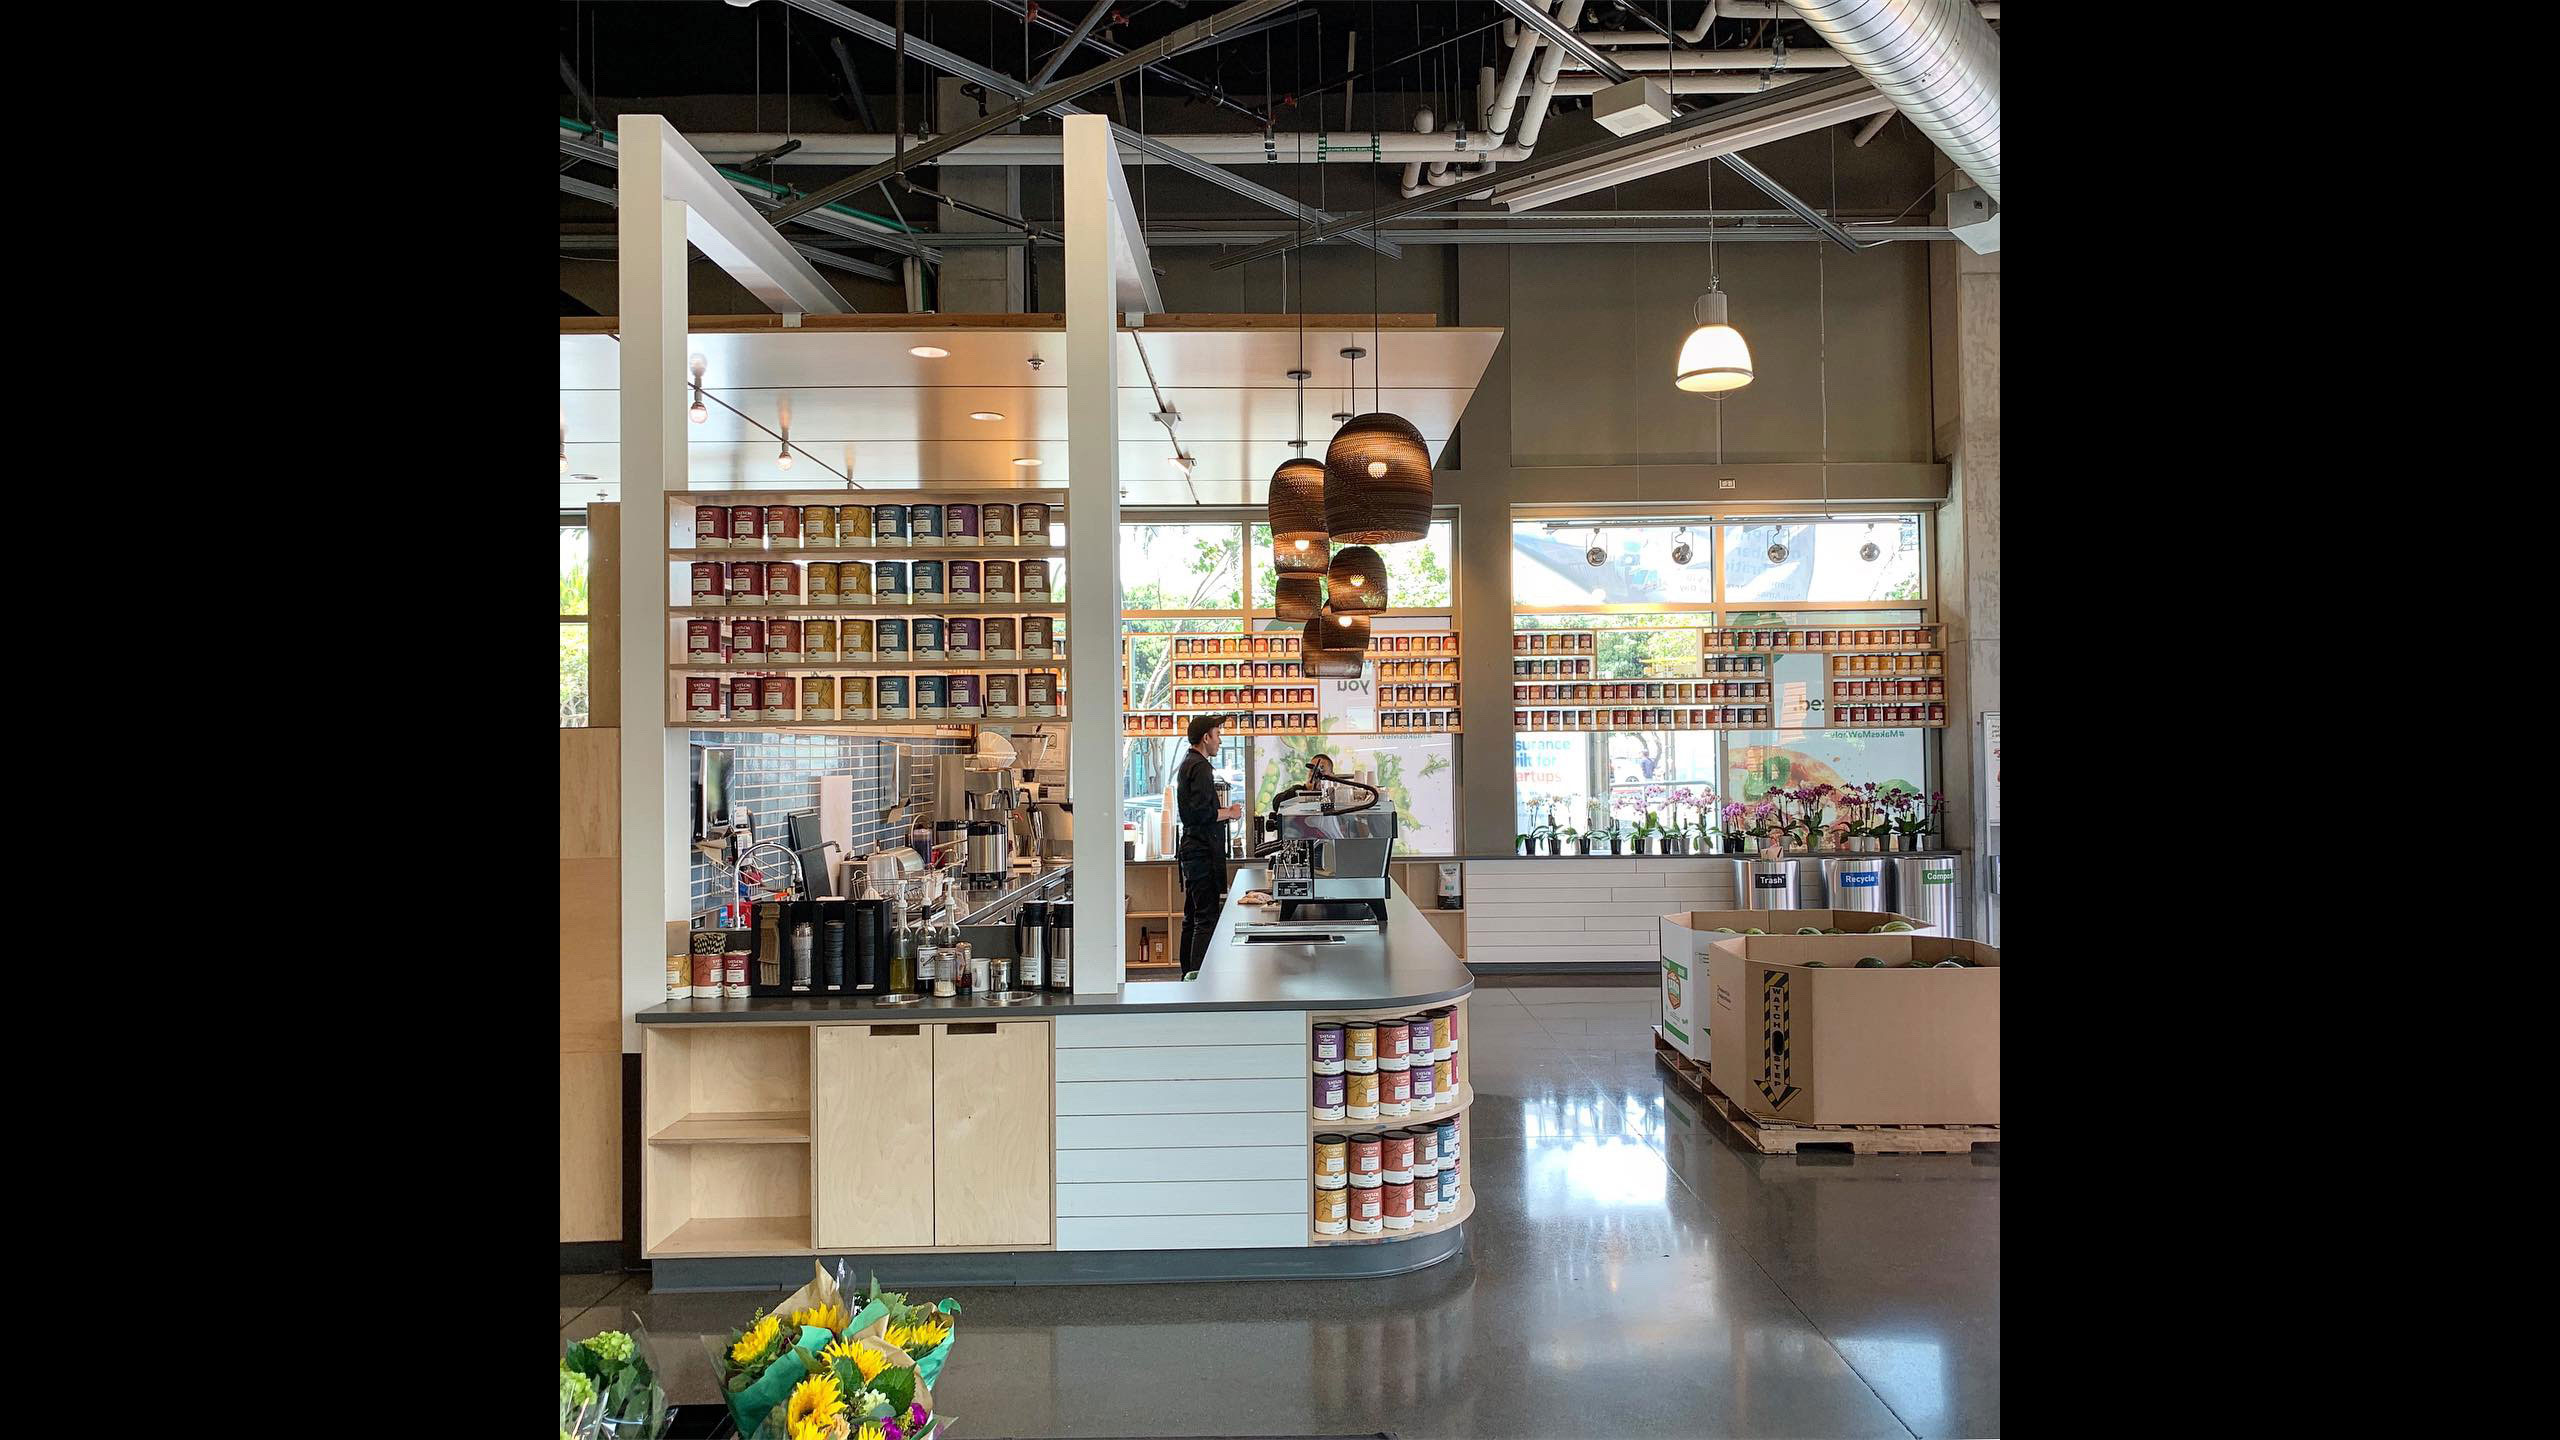 Coffee-Shop-Design-Taylor-Lane-1-Counter-with-dropped-ceiling-brown-light-fixtures-and-open-shelving